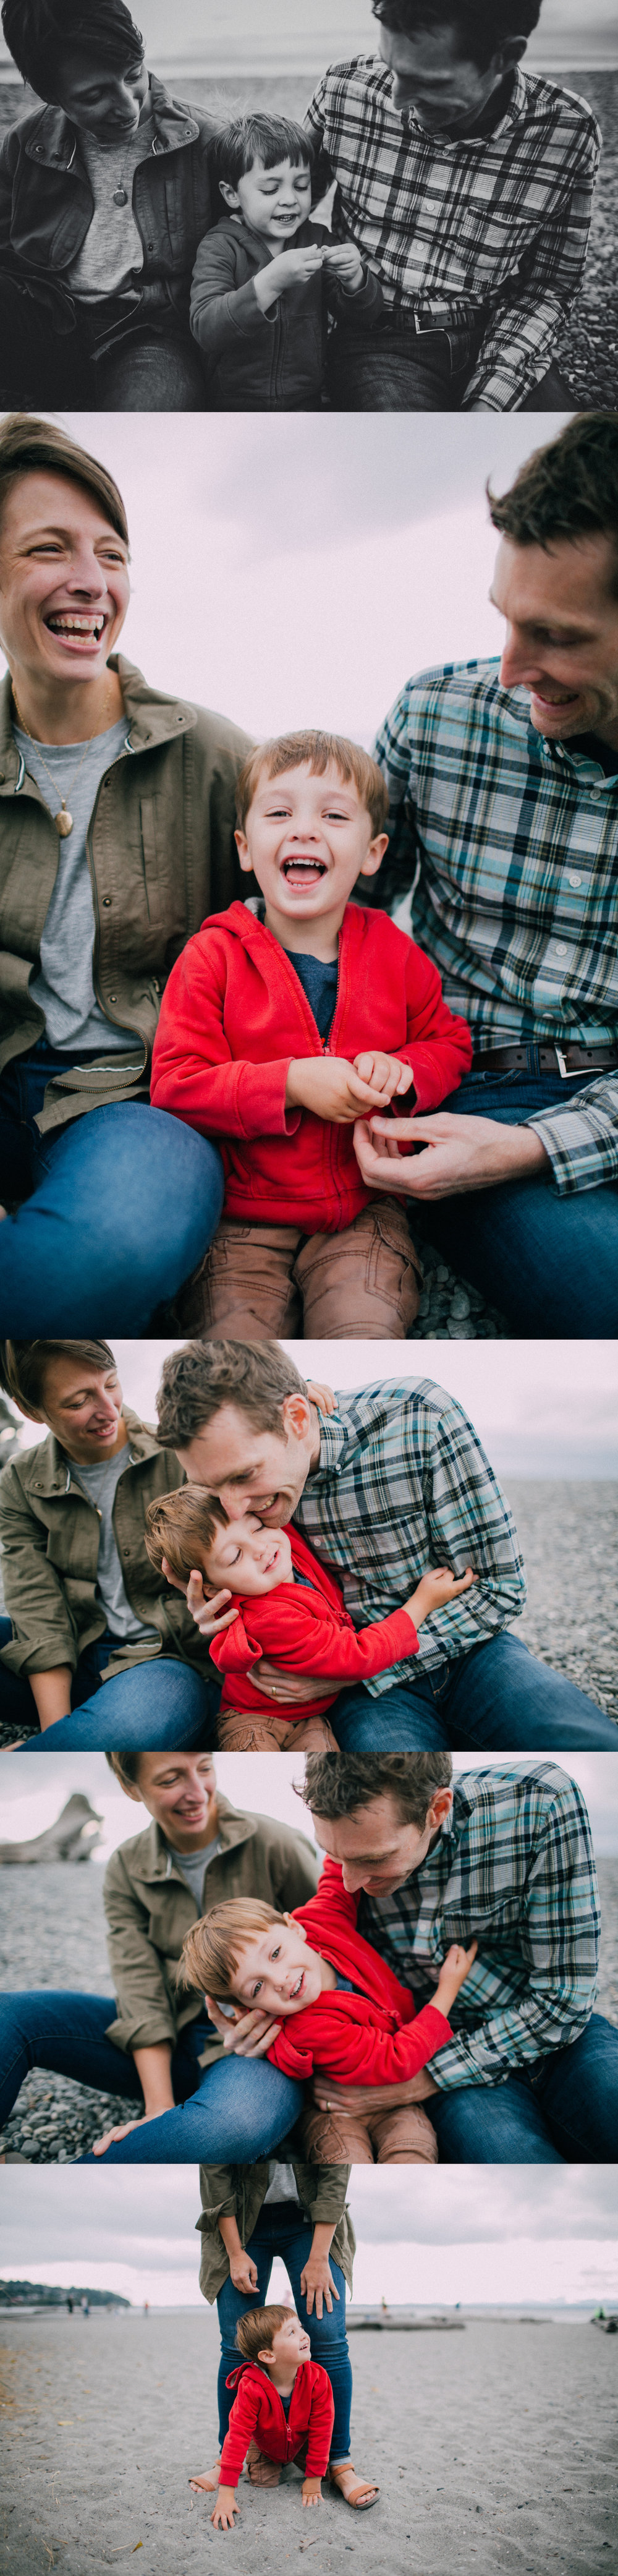 casual family lifestyle photography seattle carkeek session-11.jpg